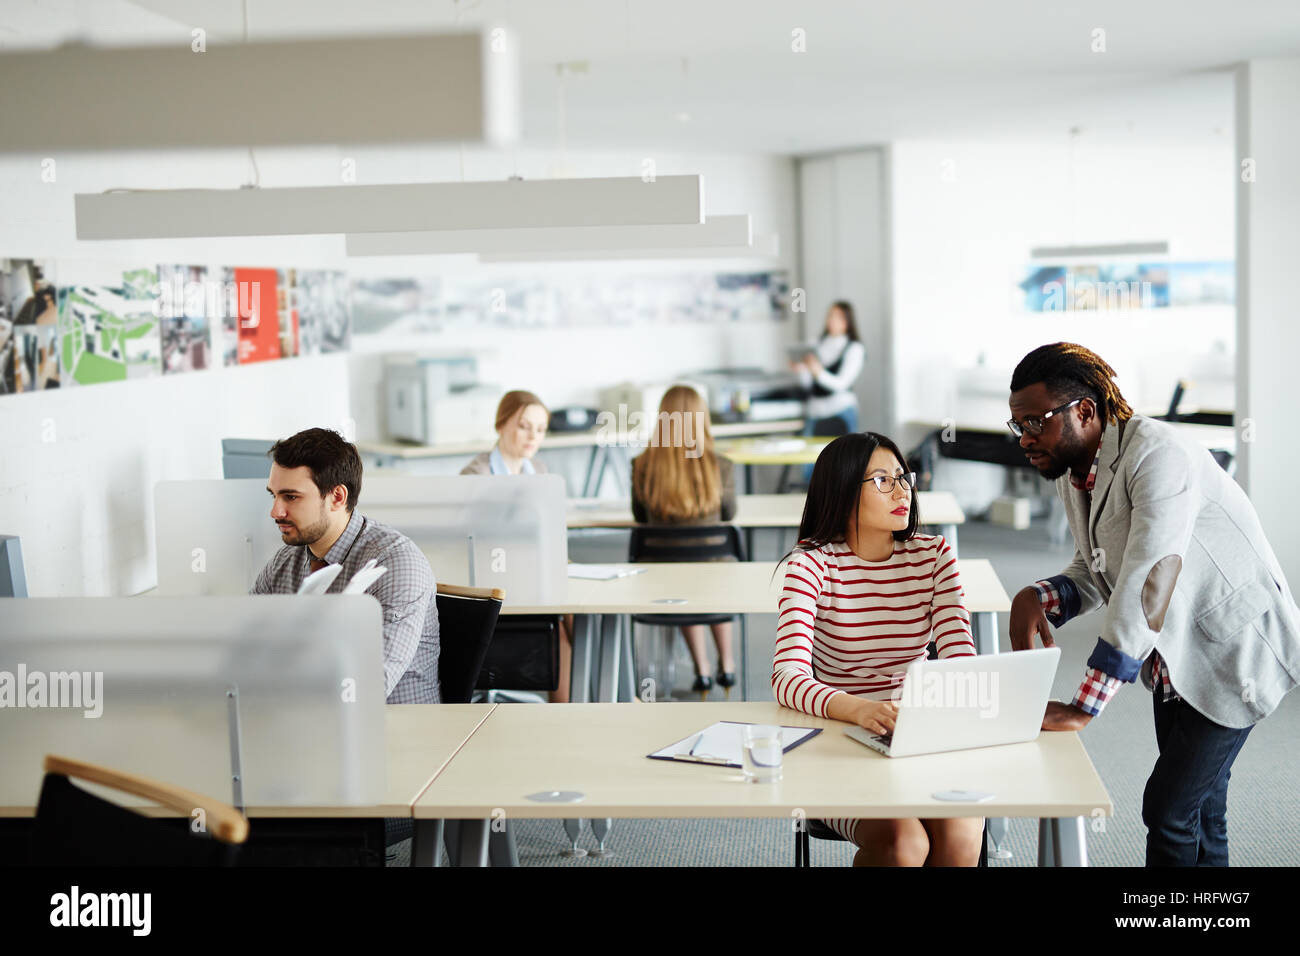 Interior of busy open plan office: male and female workers sitting at their desks, Afro-American superior discussing - Stock Image